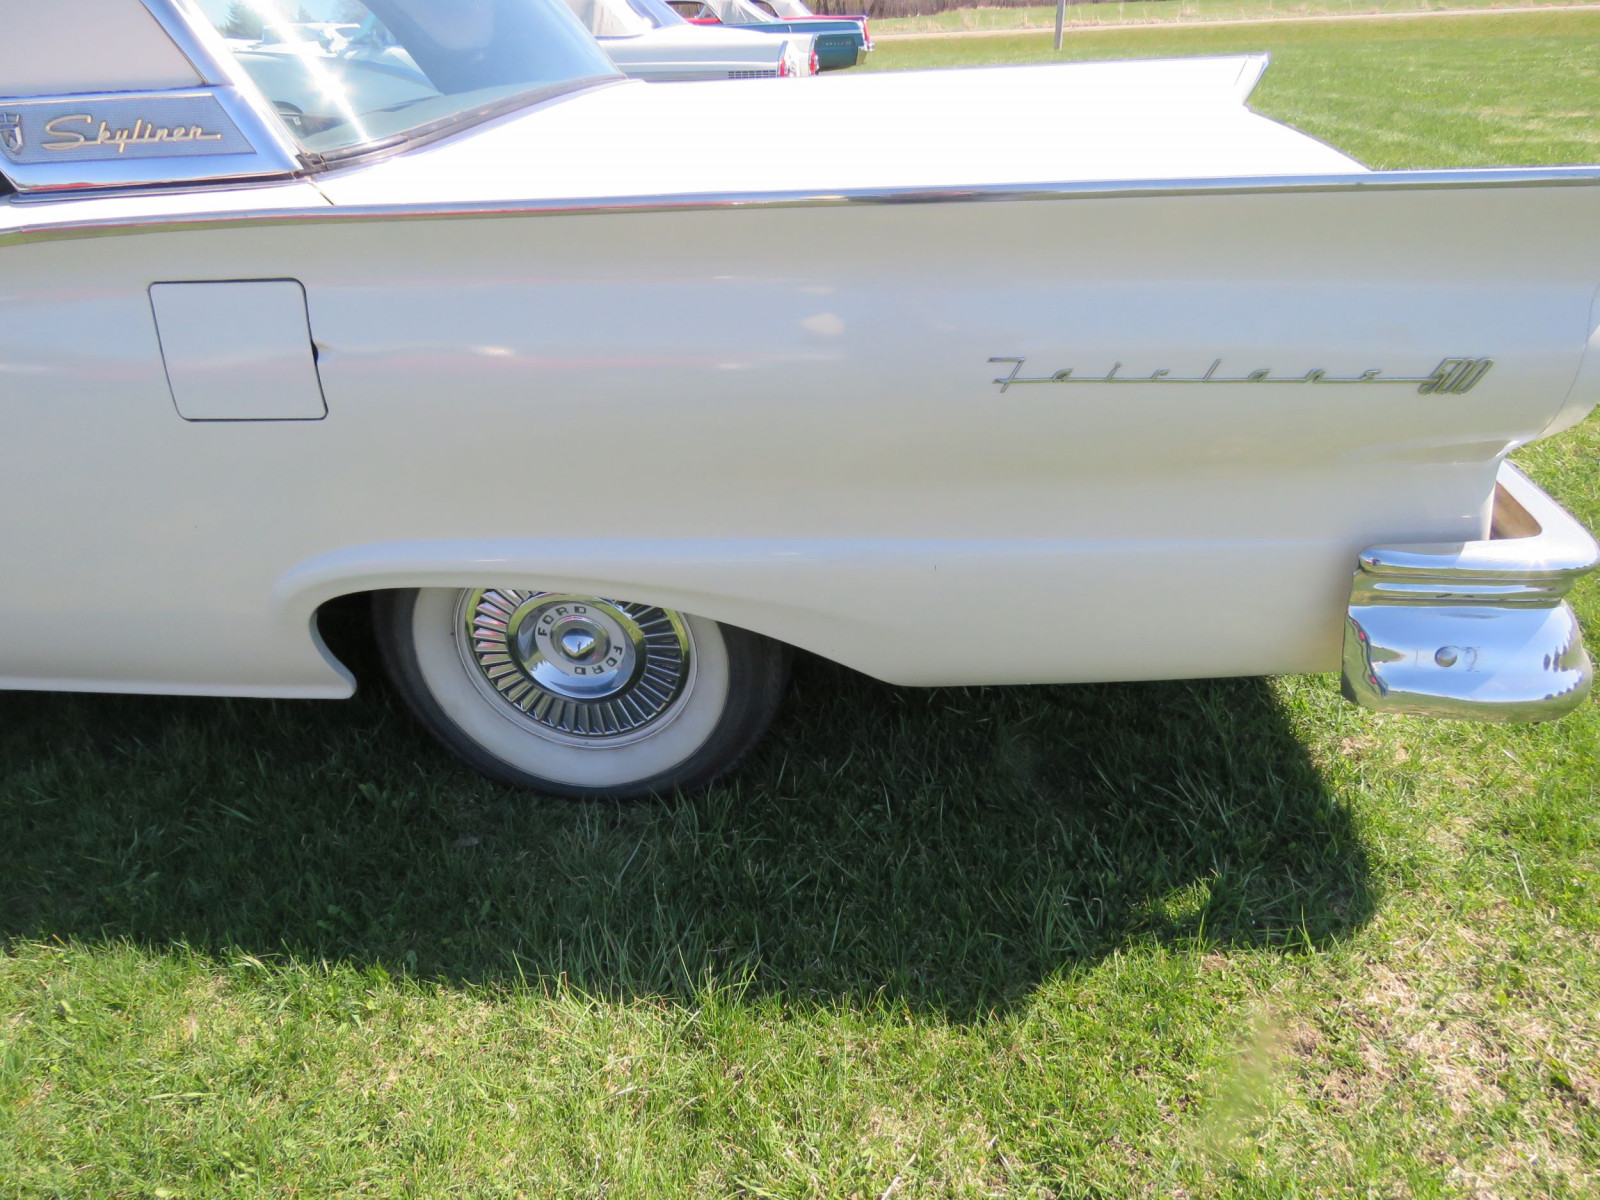 1957 Ford Fairlane 500 Skyliner Retractable Hardtop - Image 9